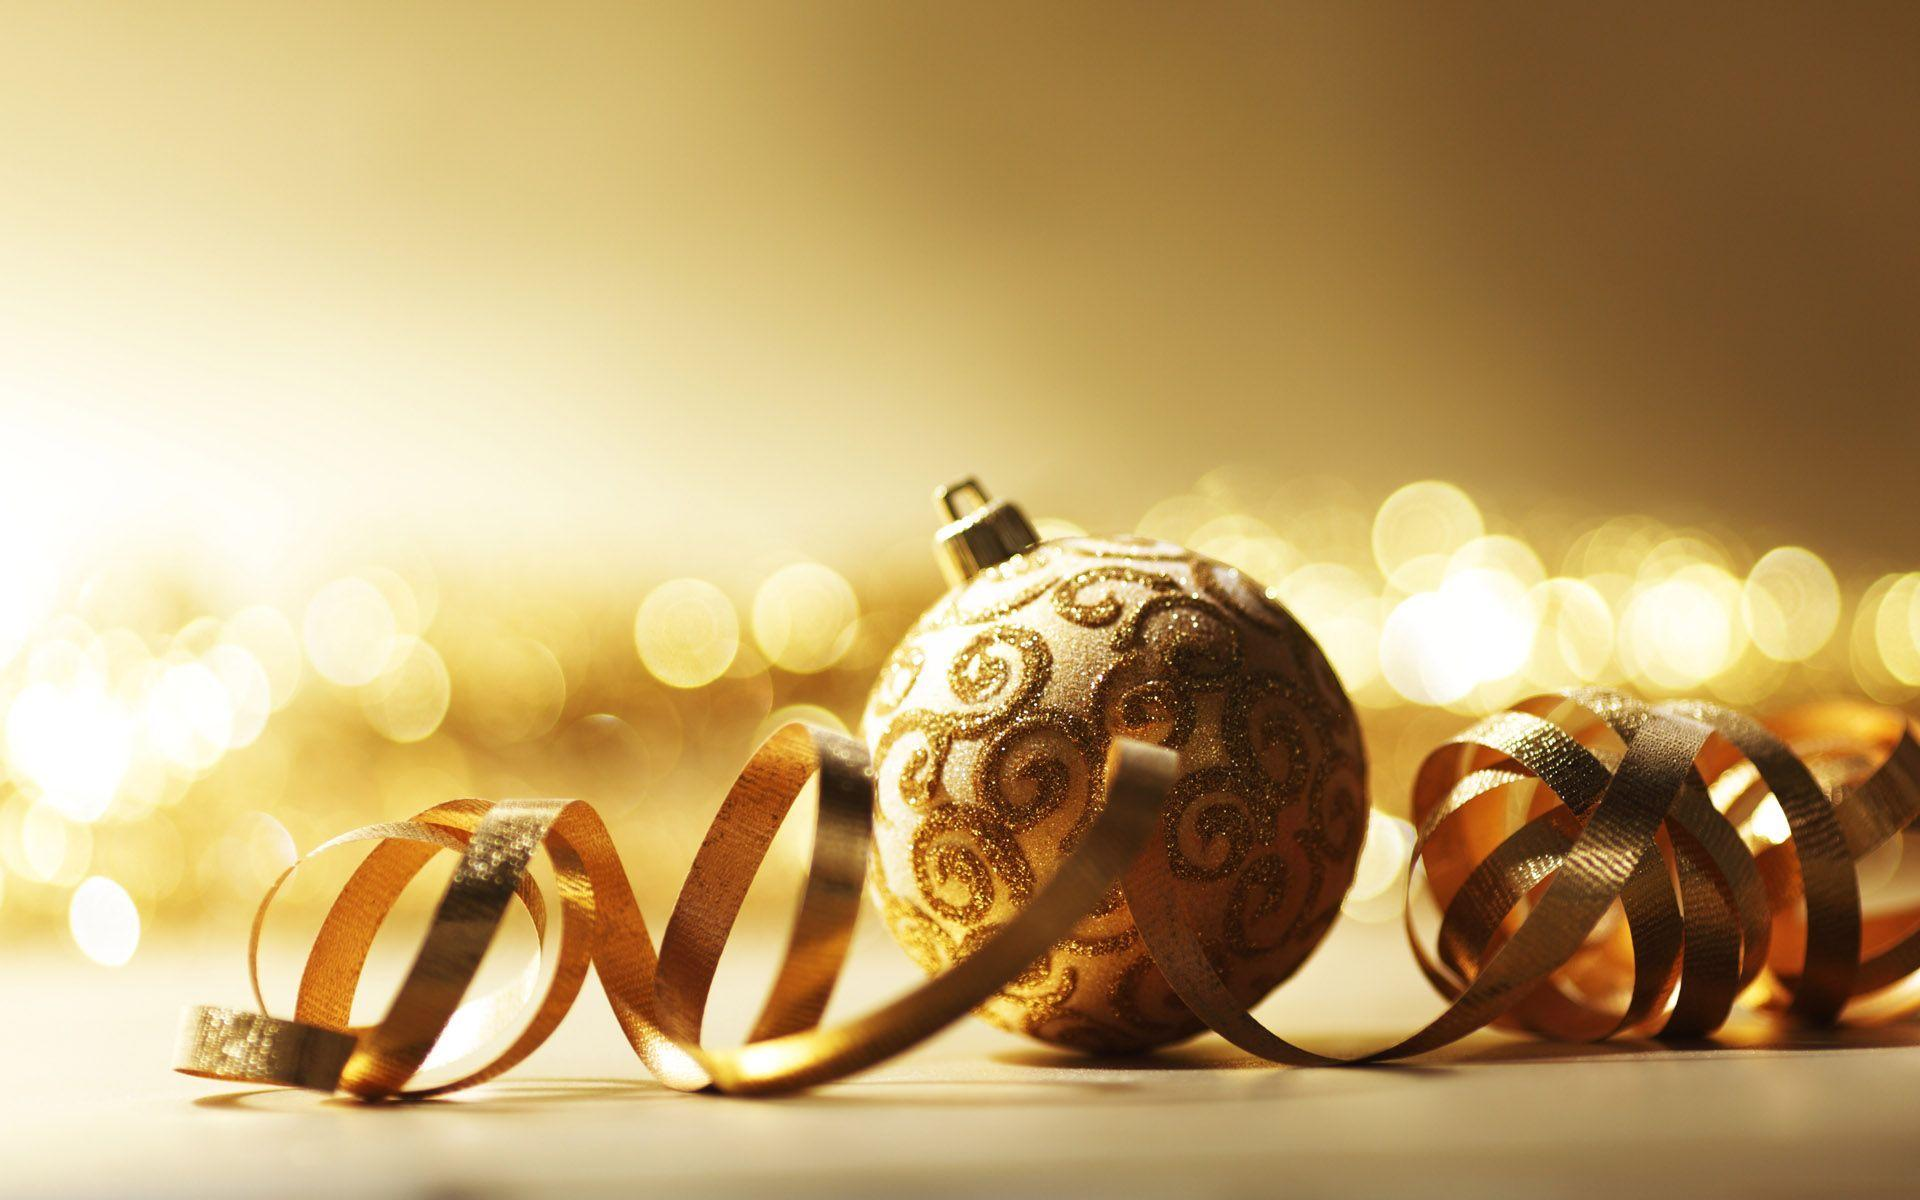 Christmas Scenery Wallpapers Wallpaper Cave